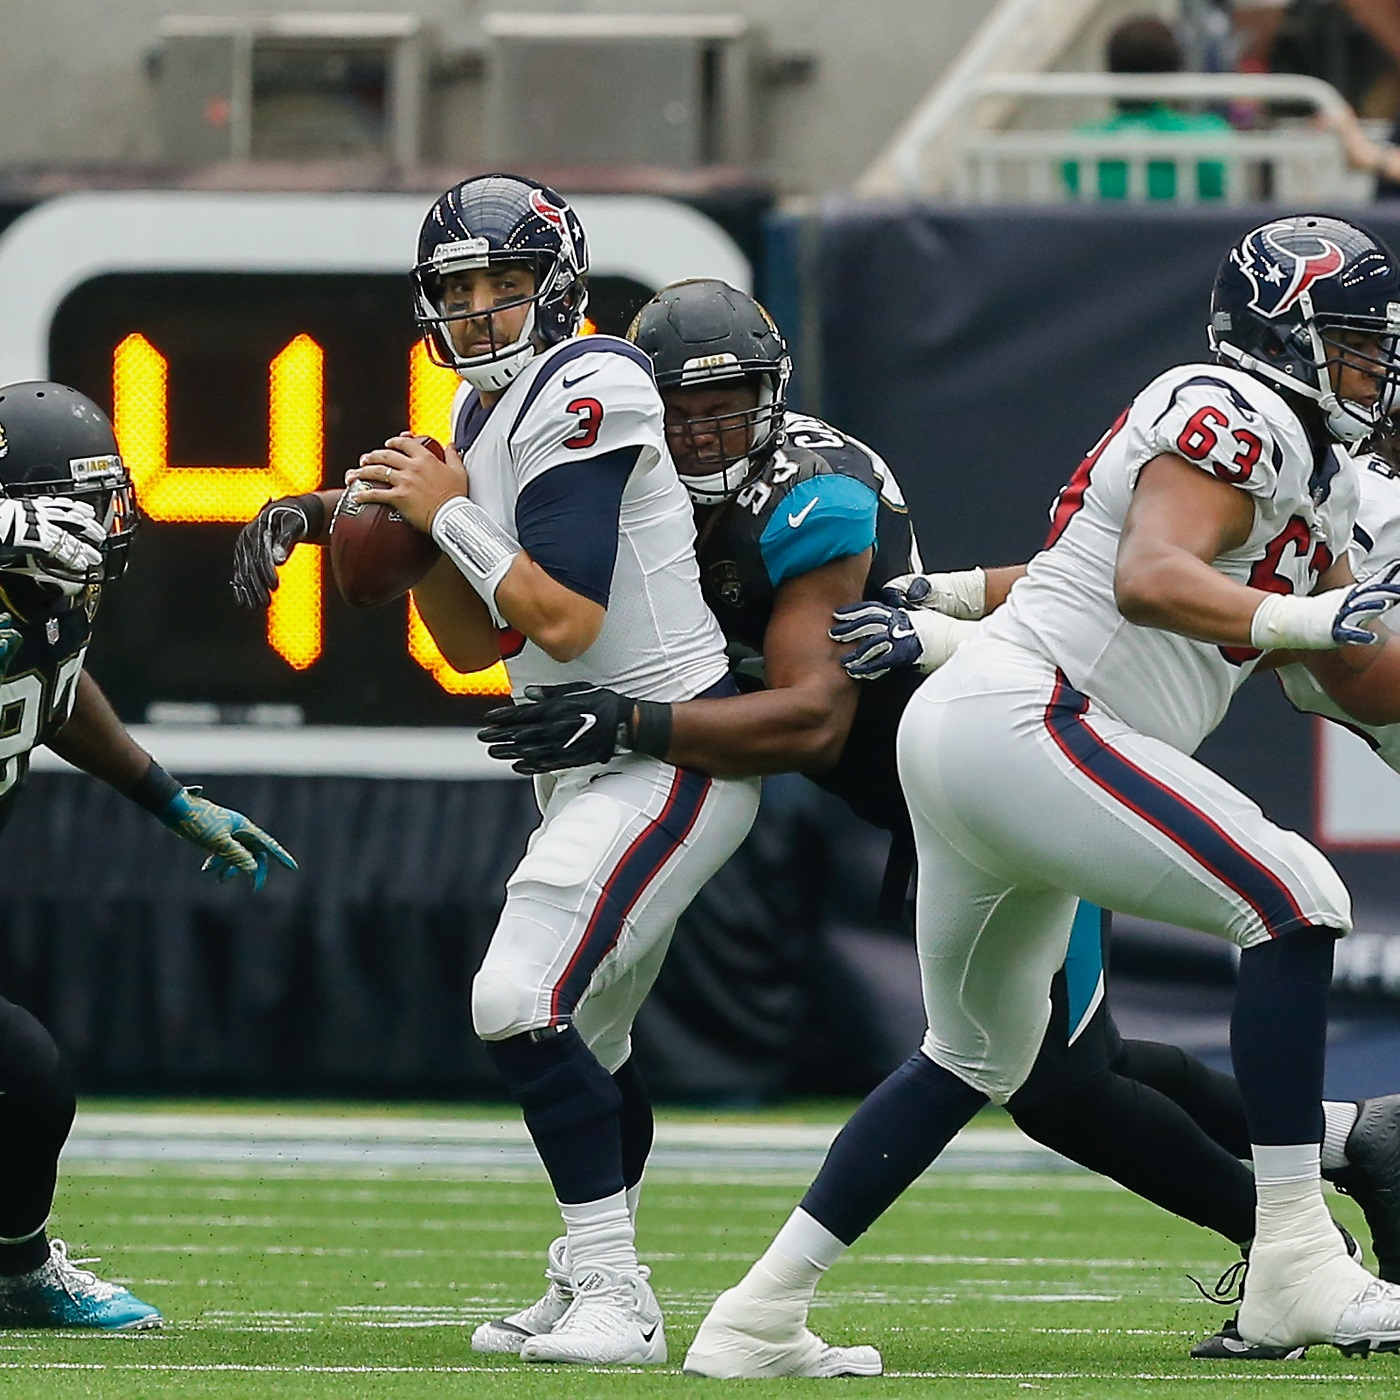 HOUSTON, TX   SEPTEMBER 10: Tom Savage #3 Of The Houston Texans Is Sacked  By Calais Campbell #93 Of The Jacksonville Jaguars In The Second Quarter At  NRG ...